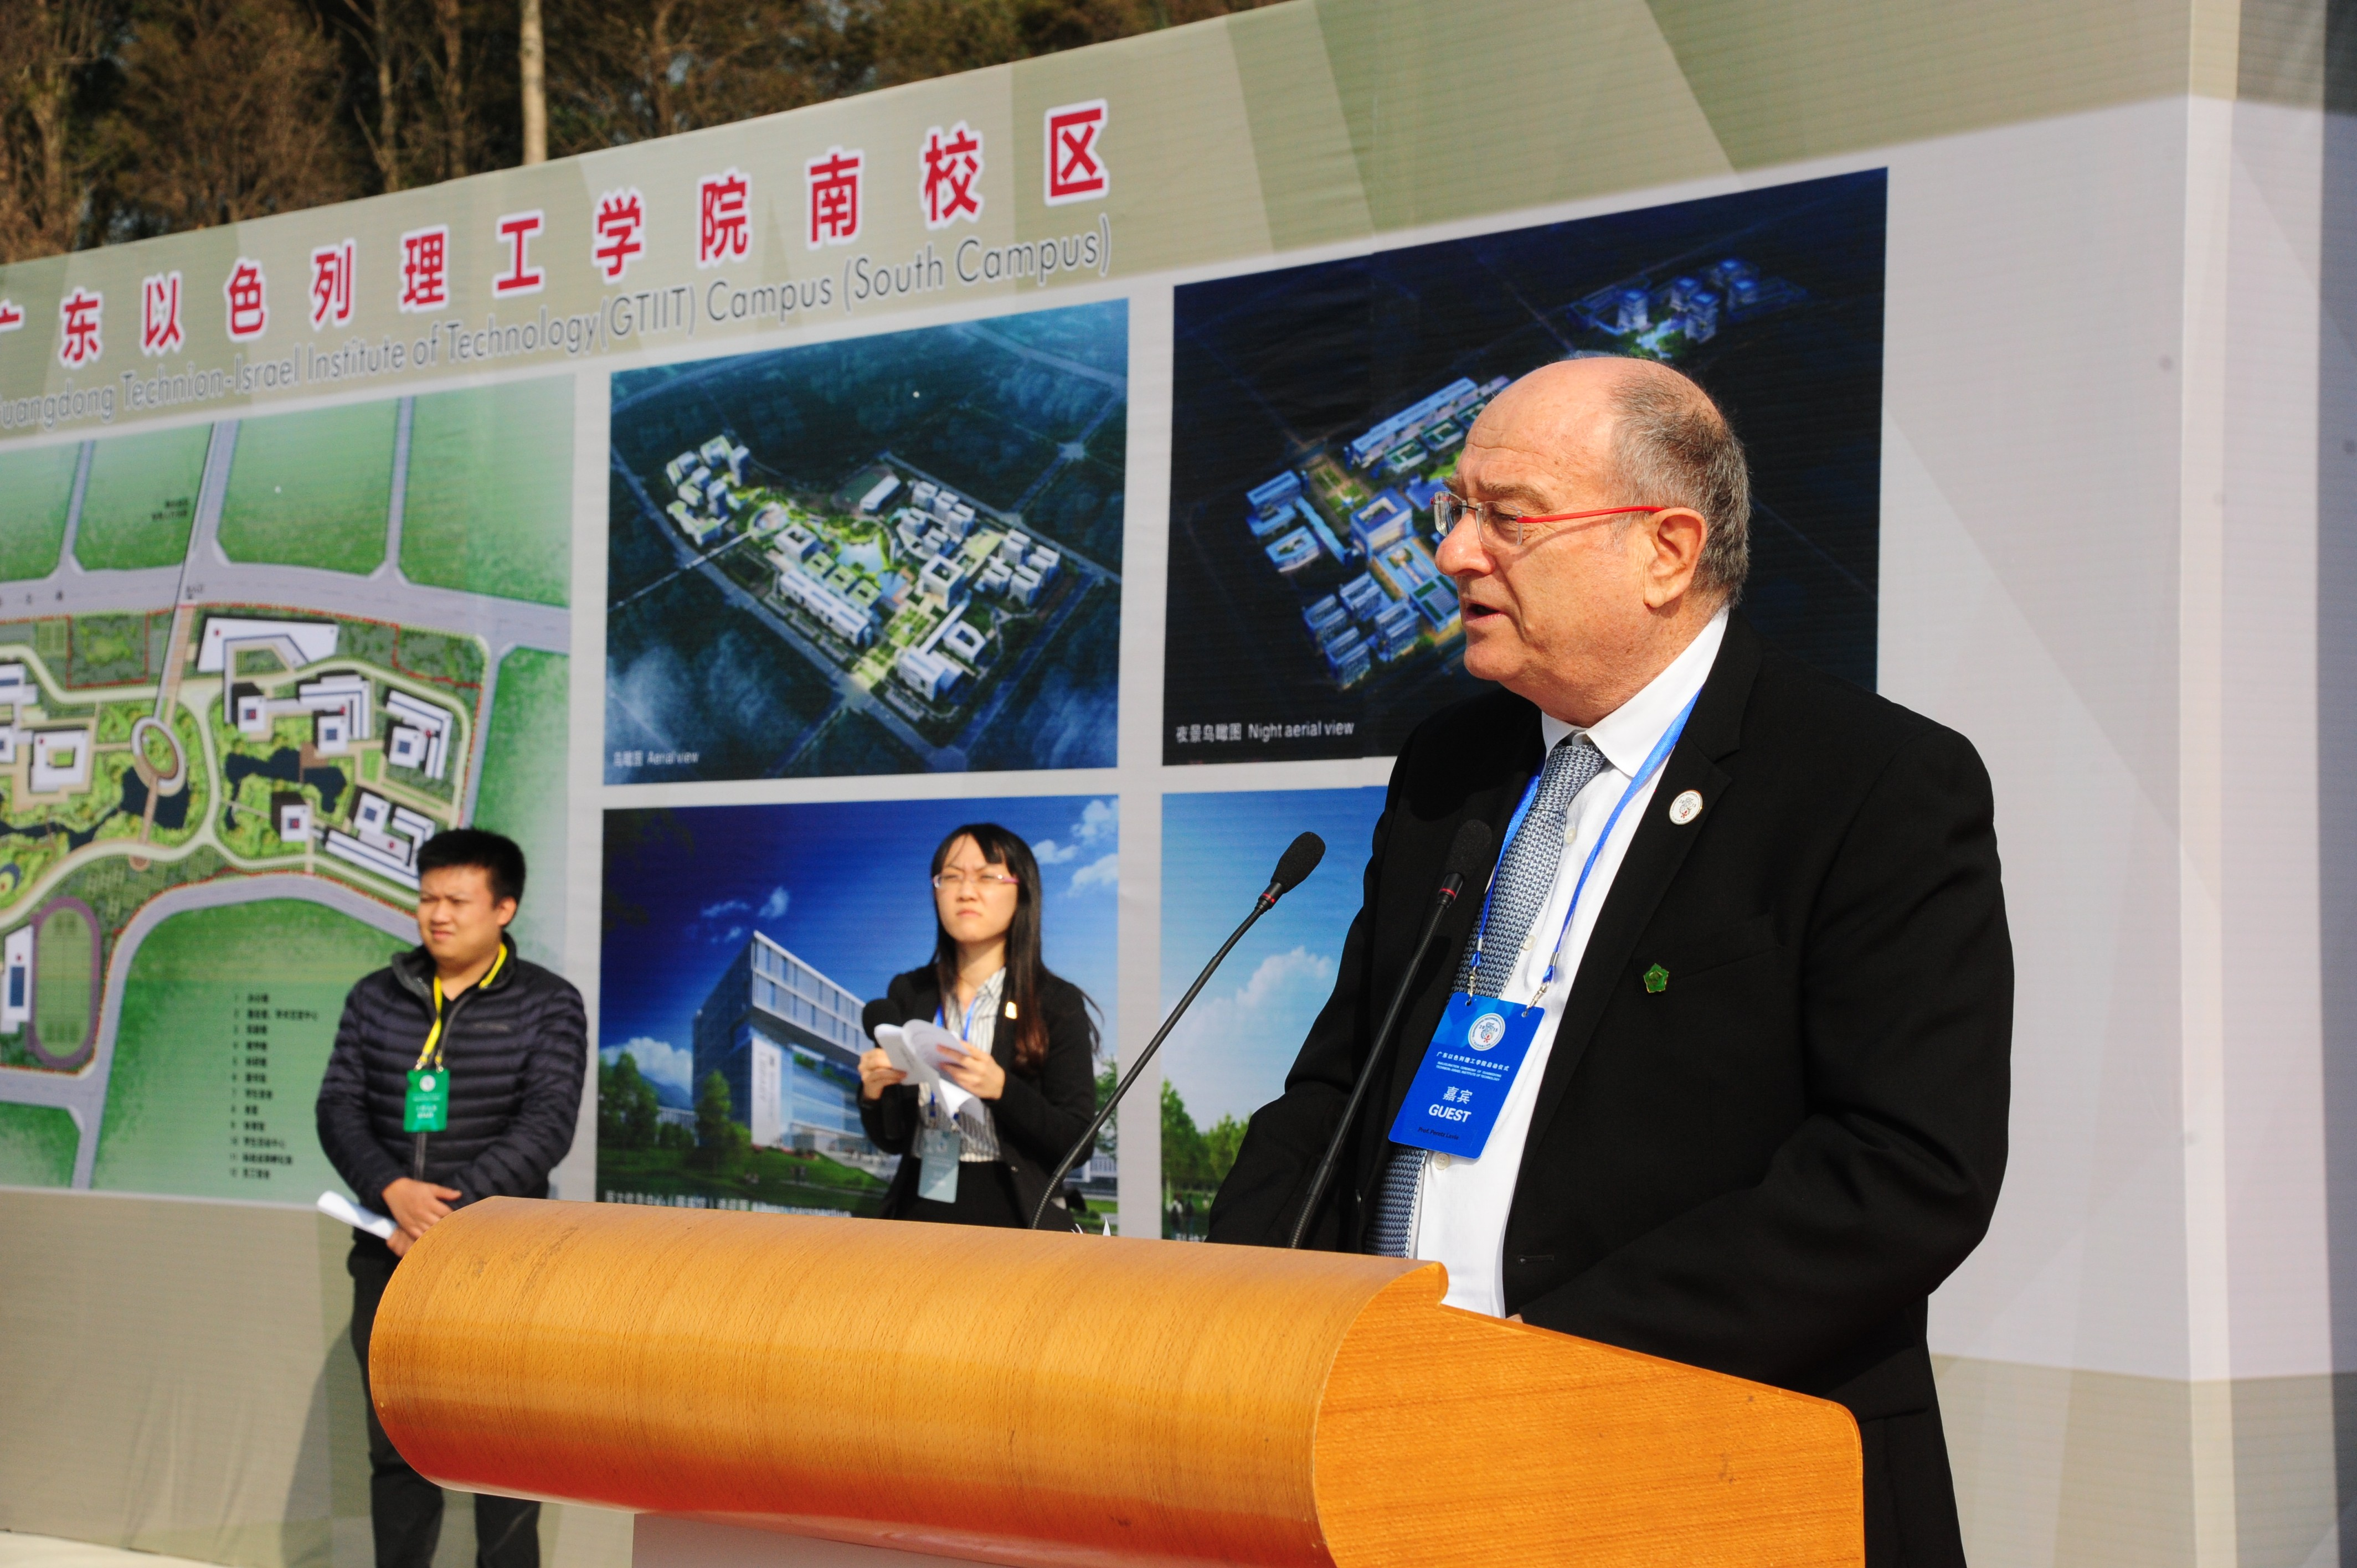 Launch of First Israeli University in China | Technion